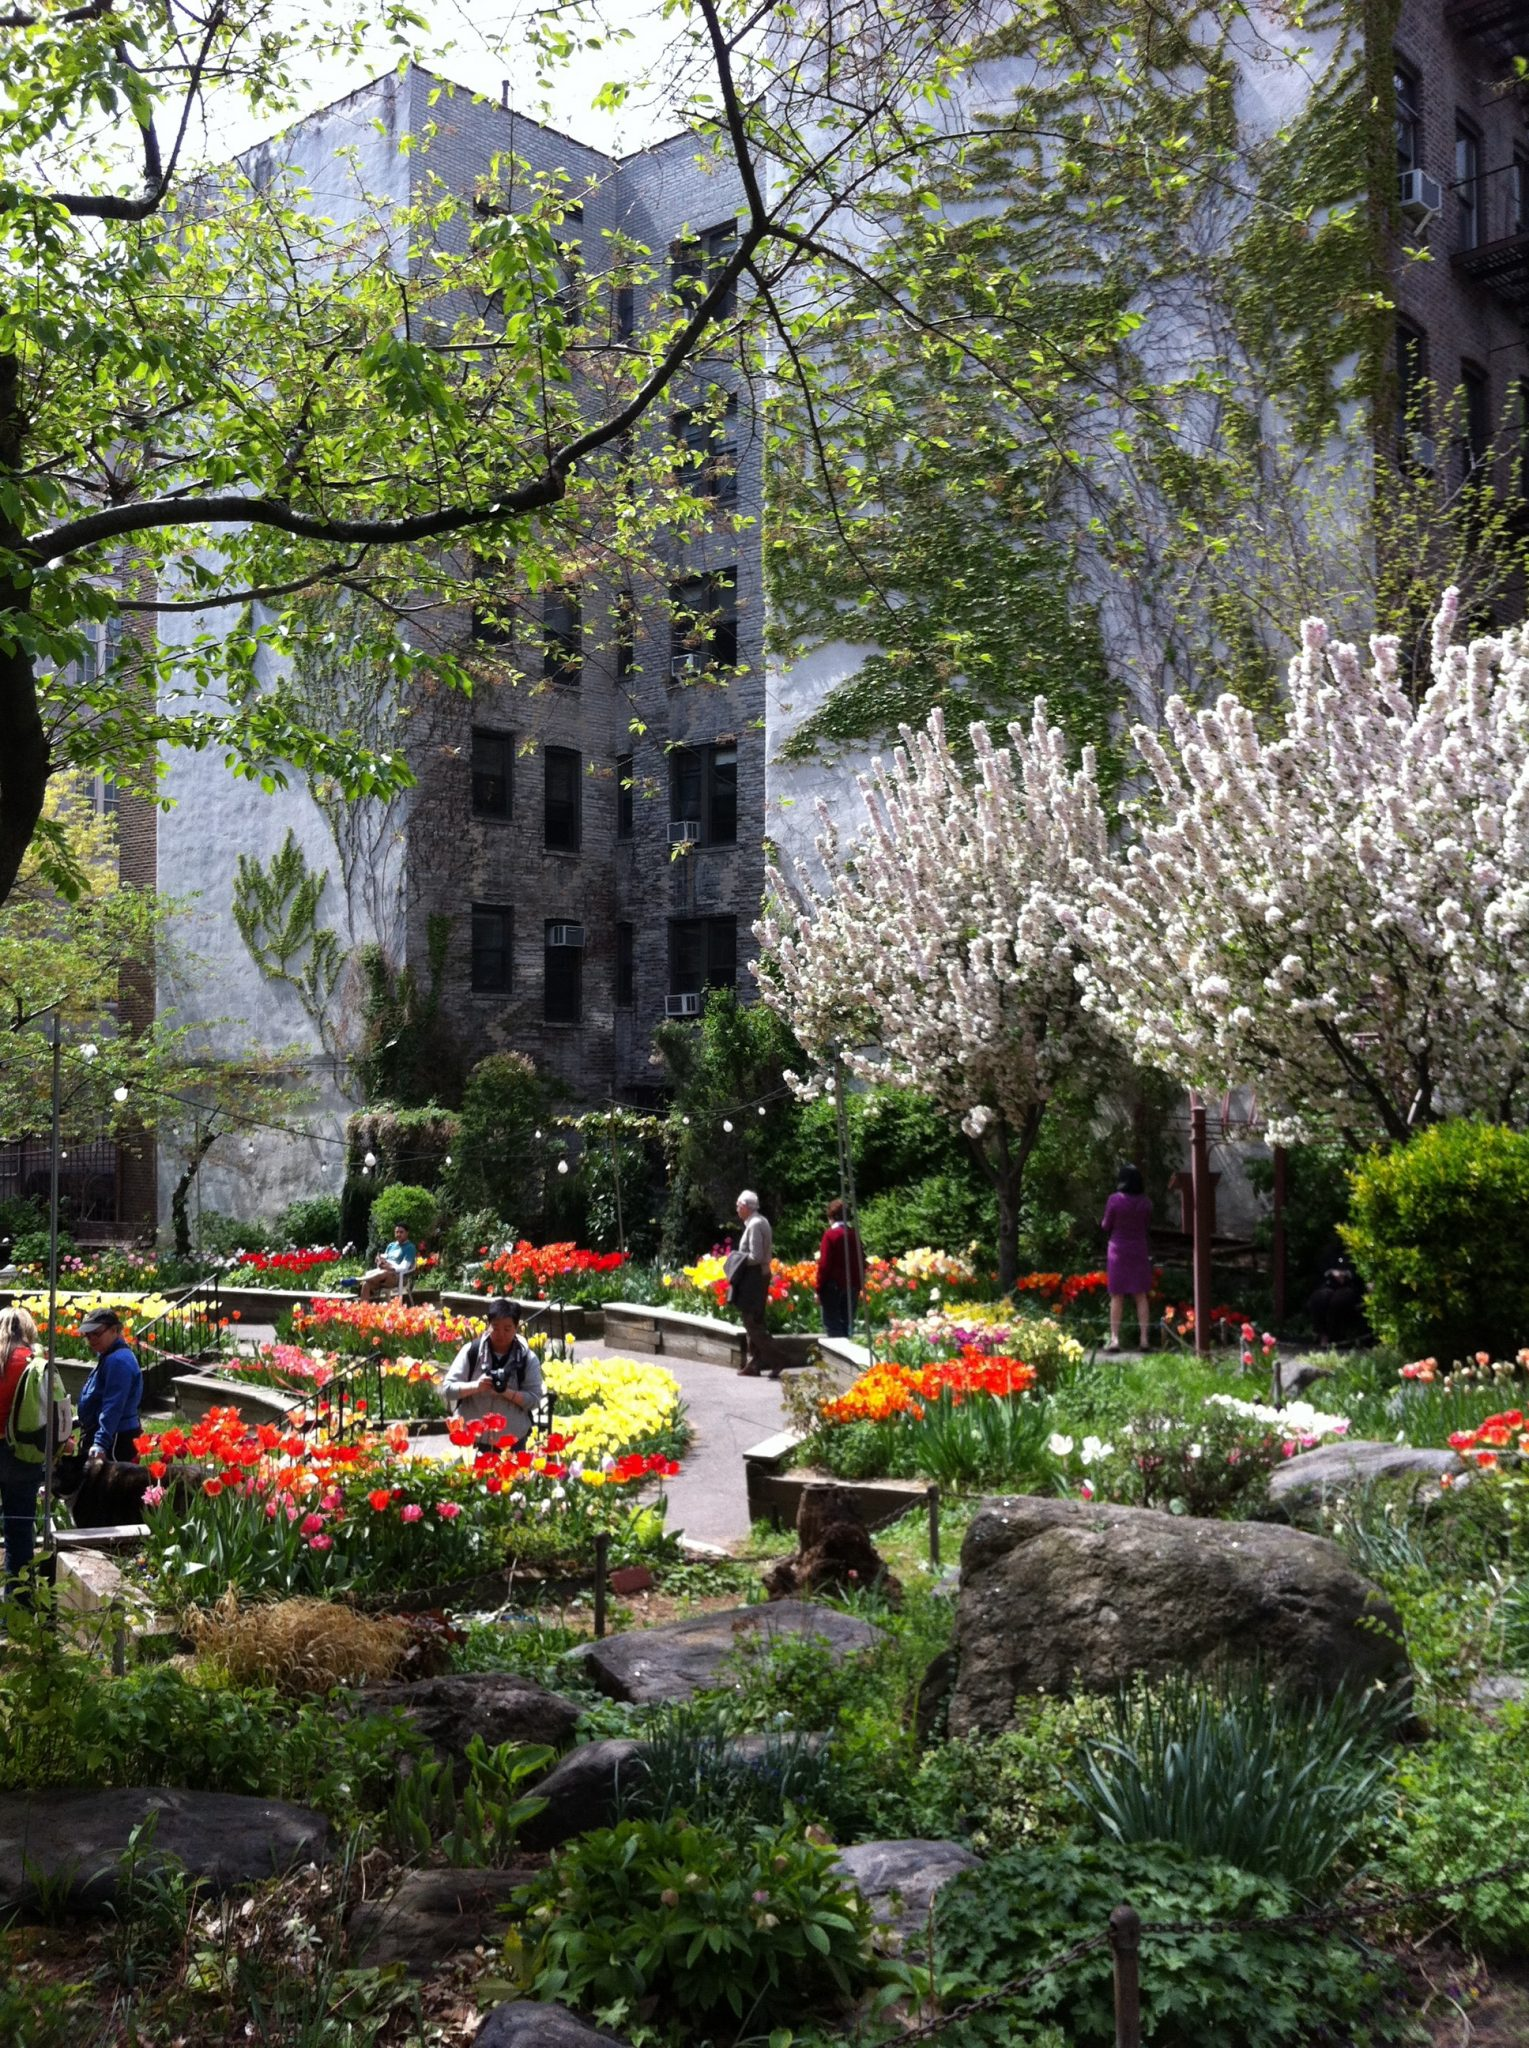 A public garden between apartment buildings in New York City. Photo: David Maddox